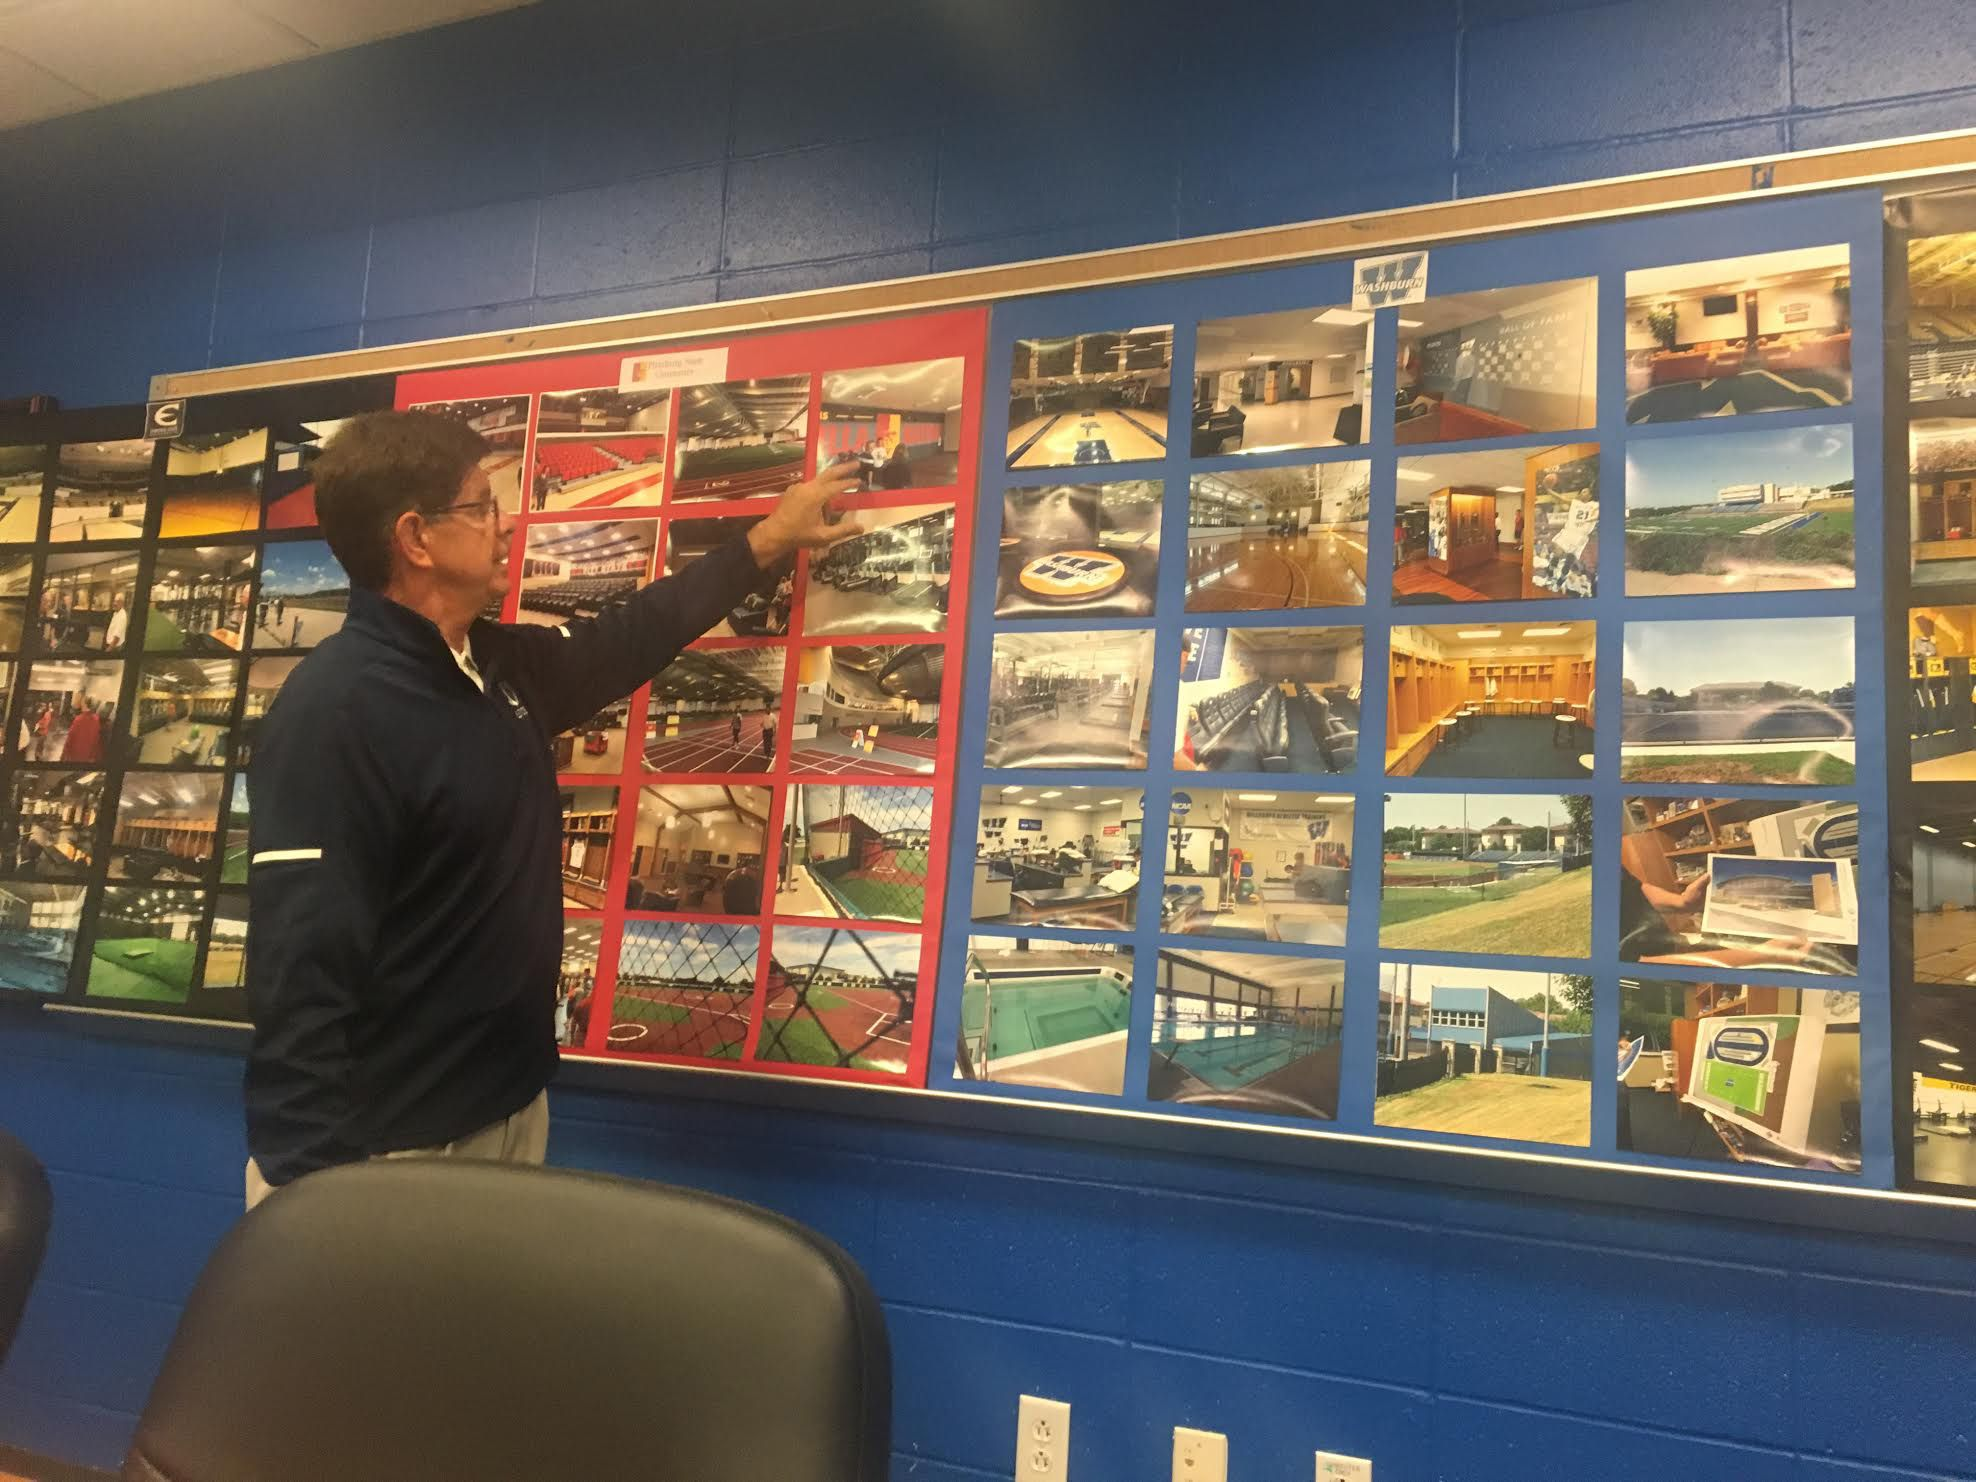 Planning process begins for new athletic facilities